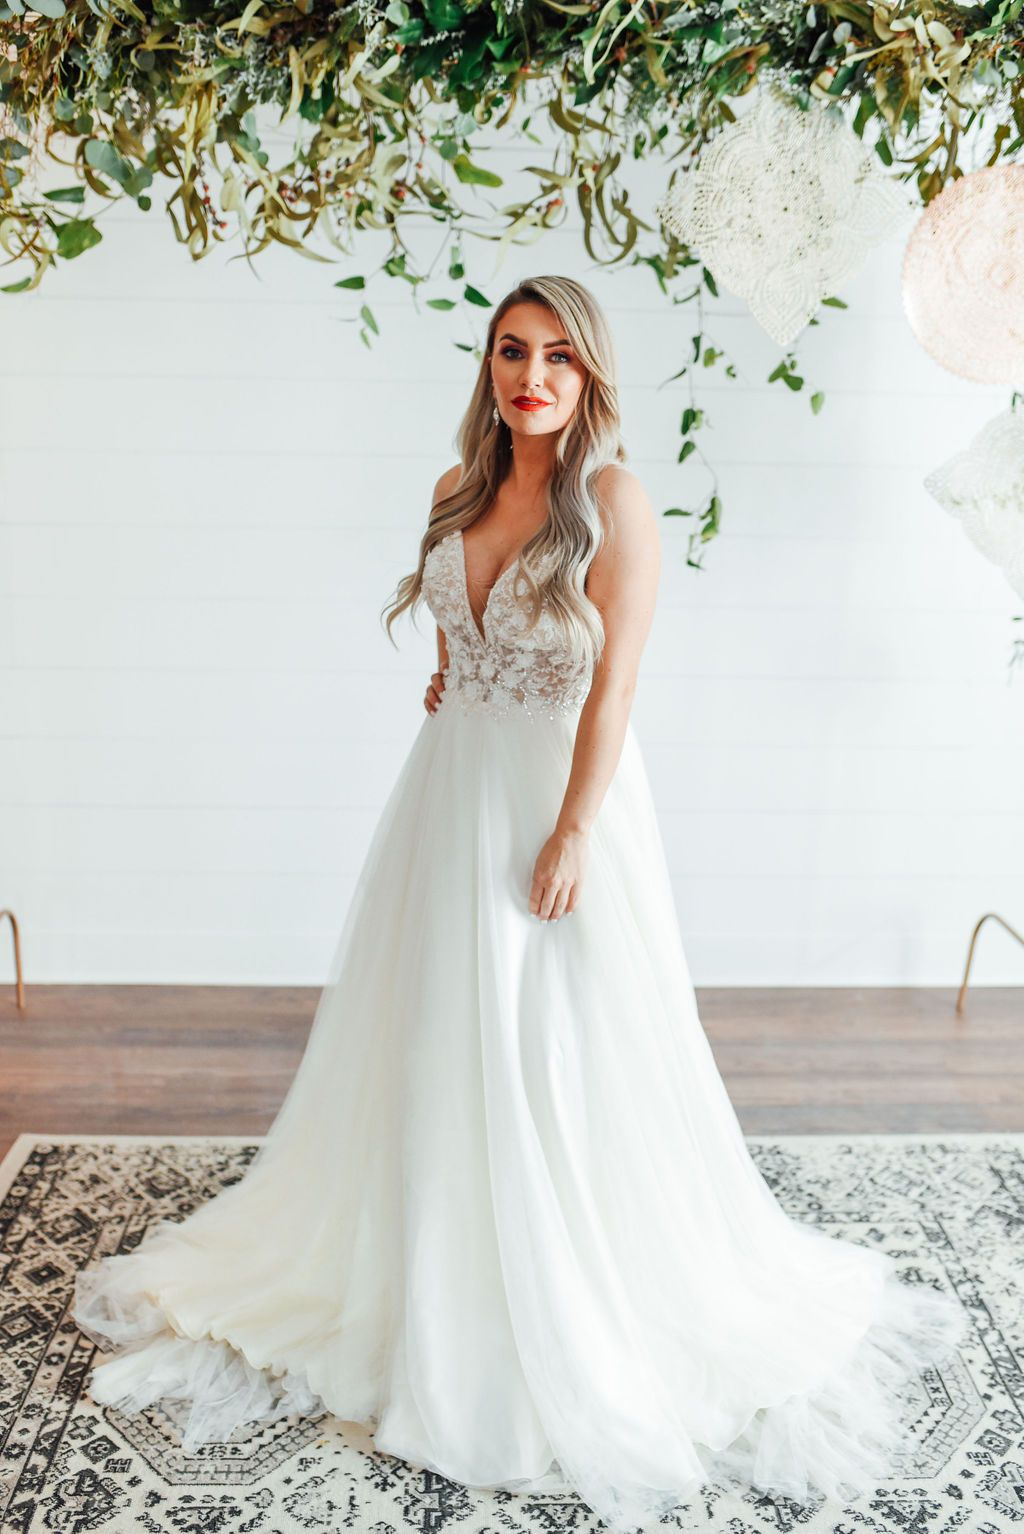 The Wedding Studio In Carmel Indiana At The Clay Terrace Shopping Center Offers A Unique Variety O Affordable Bridal Gowns Wedding Dresses Couture Bridal Gowns